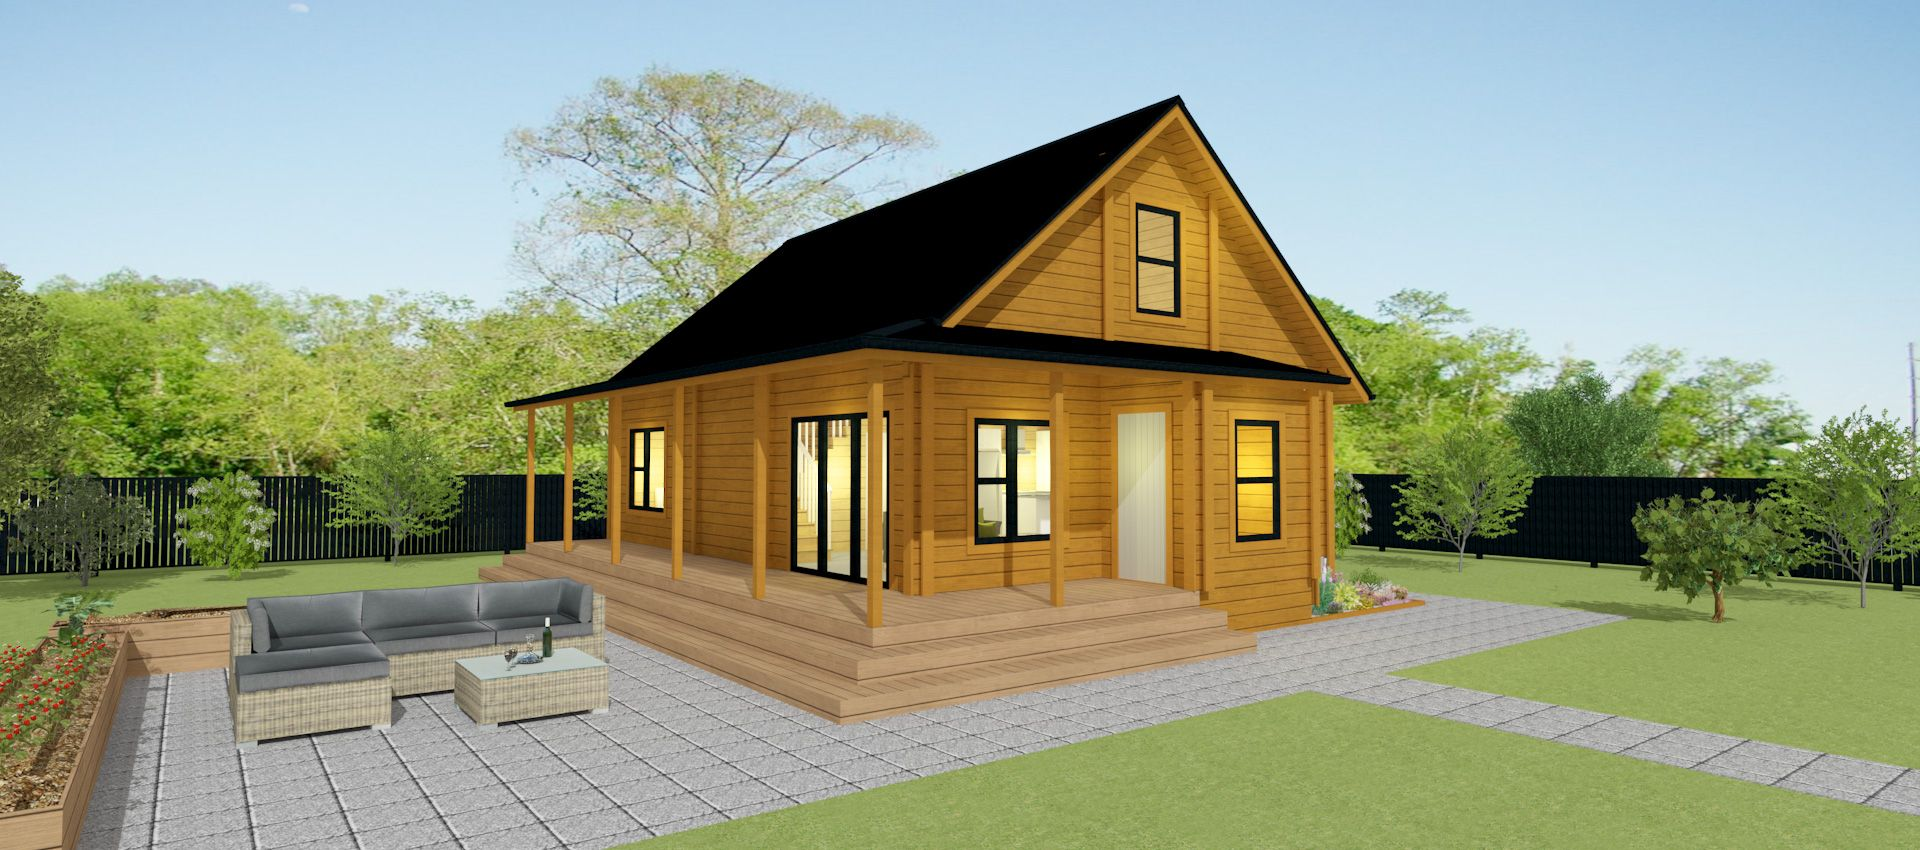 This 2 Story 3 Bedroom Alpine Chalet With High Pitched Roof Offers A Lovely Wrap Around Covered Veranda For Sheltered House Plans House Plans 3 Bedroom House